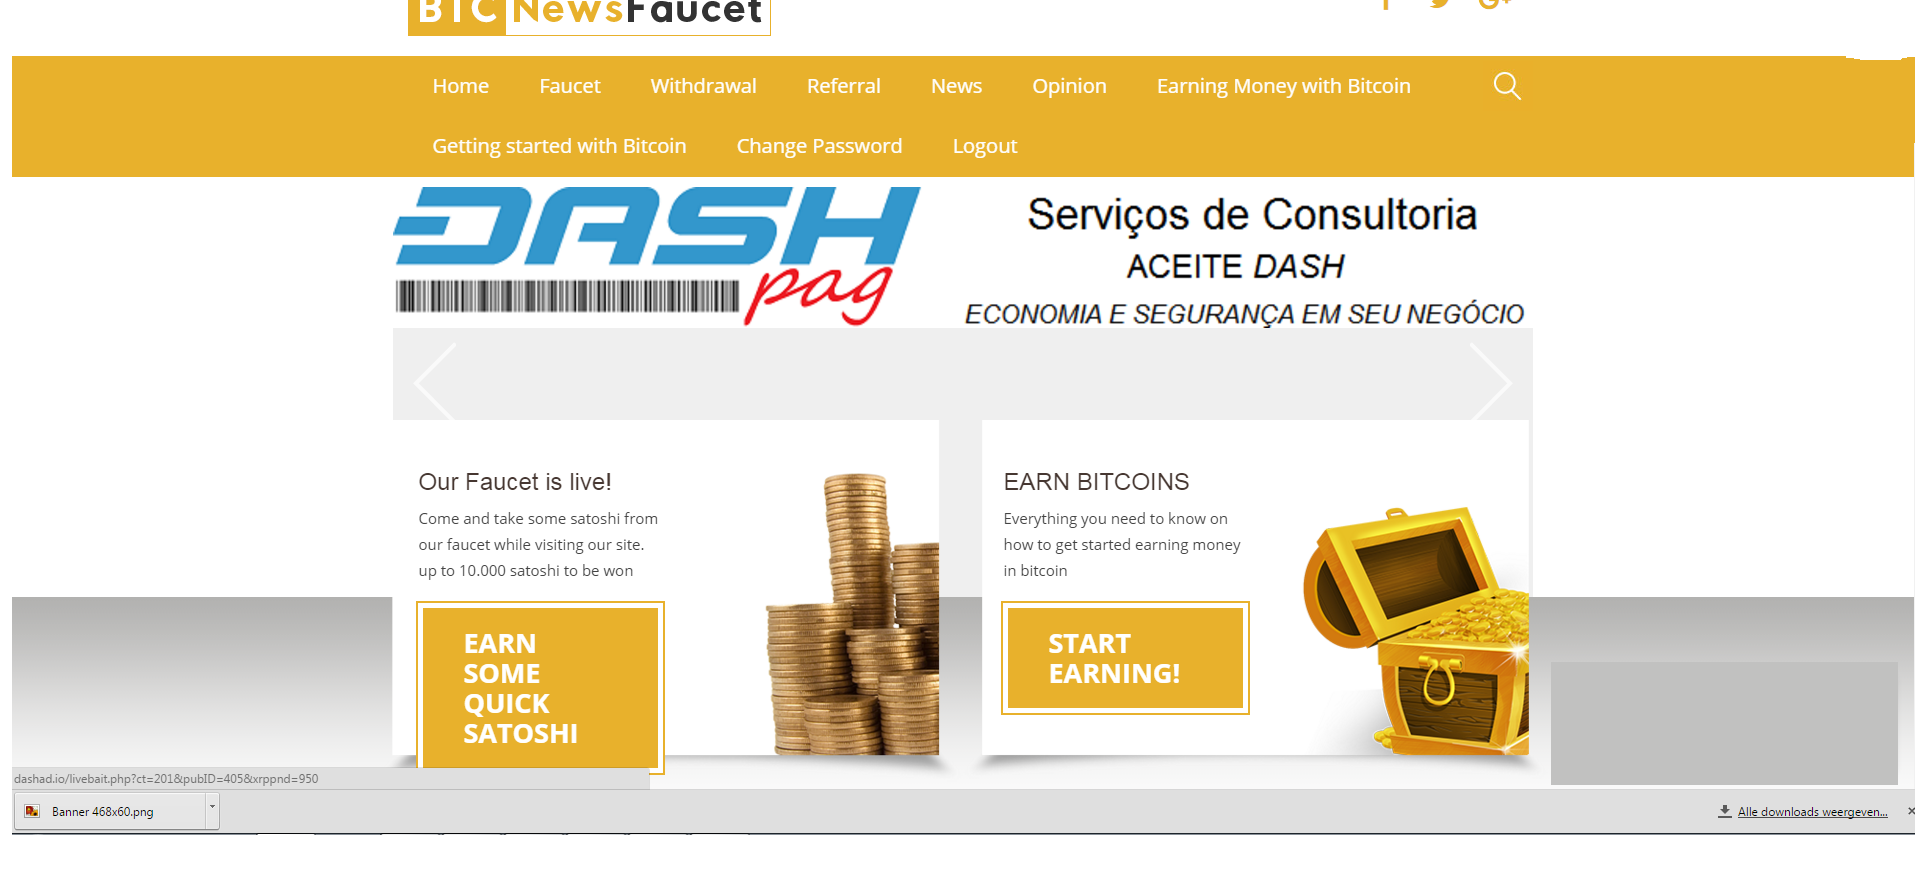 bitcoin news faucet screenshot